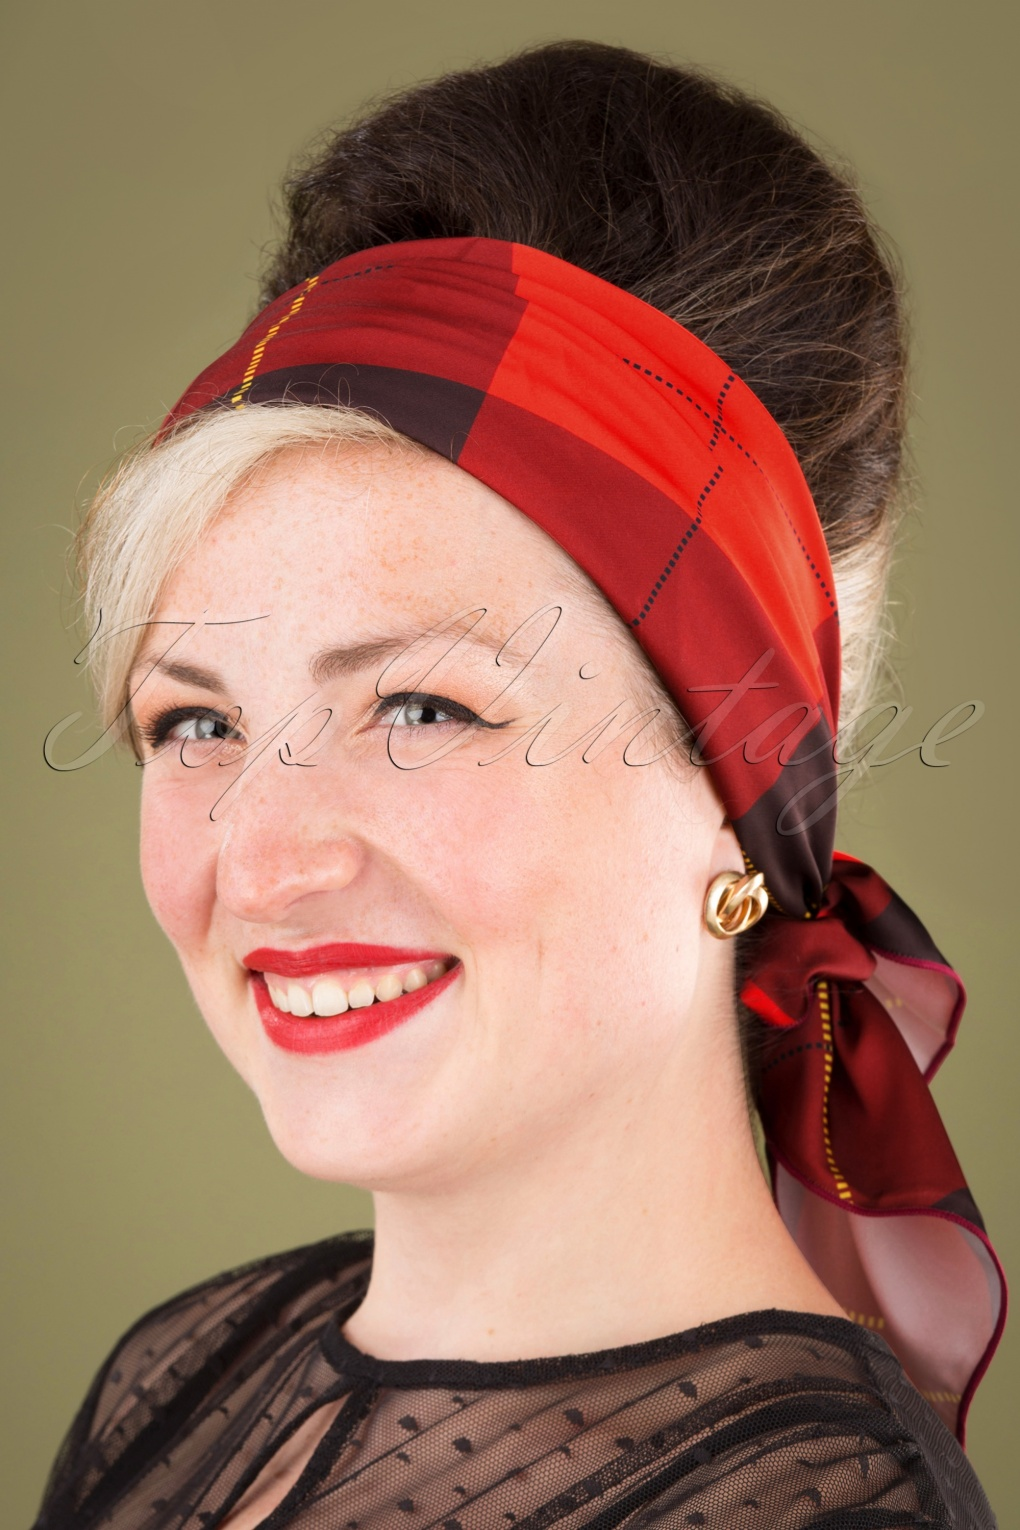 Vintage Hair Accessories: Combs, Headbands, Flowers, Scarf, Wigs 50s Plaid Hair Scarf in Red £17.39 AT vintagedancer.com